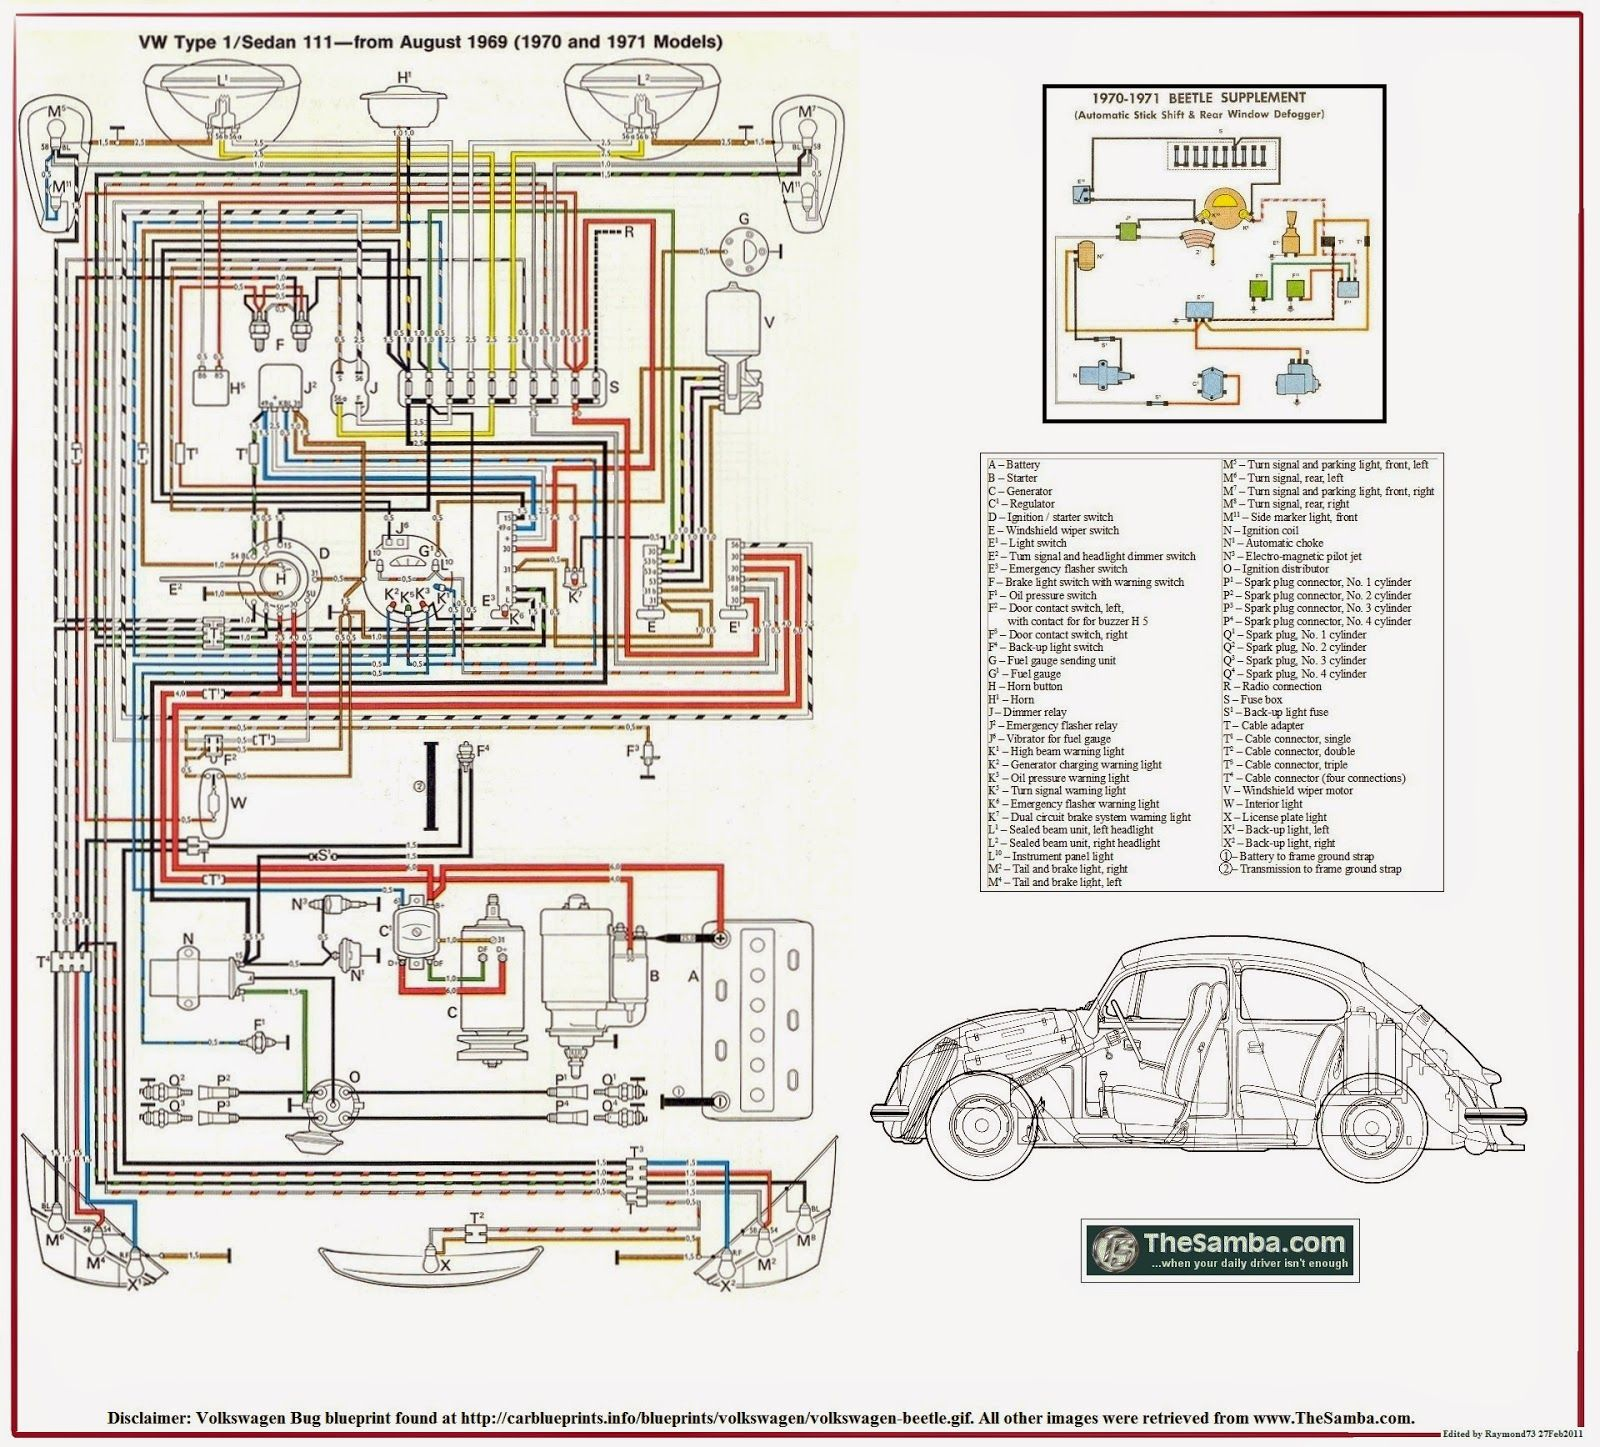 c42f7e50c6cd2df691326f8c1e5c6e97 urbi et orbi my bucket list journals volkswagen (vw) beetle 1998 vw beetle radio wiring diagram at bayanpartner.co